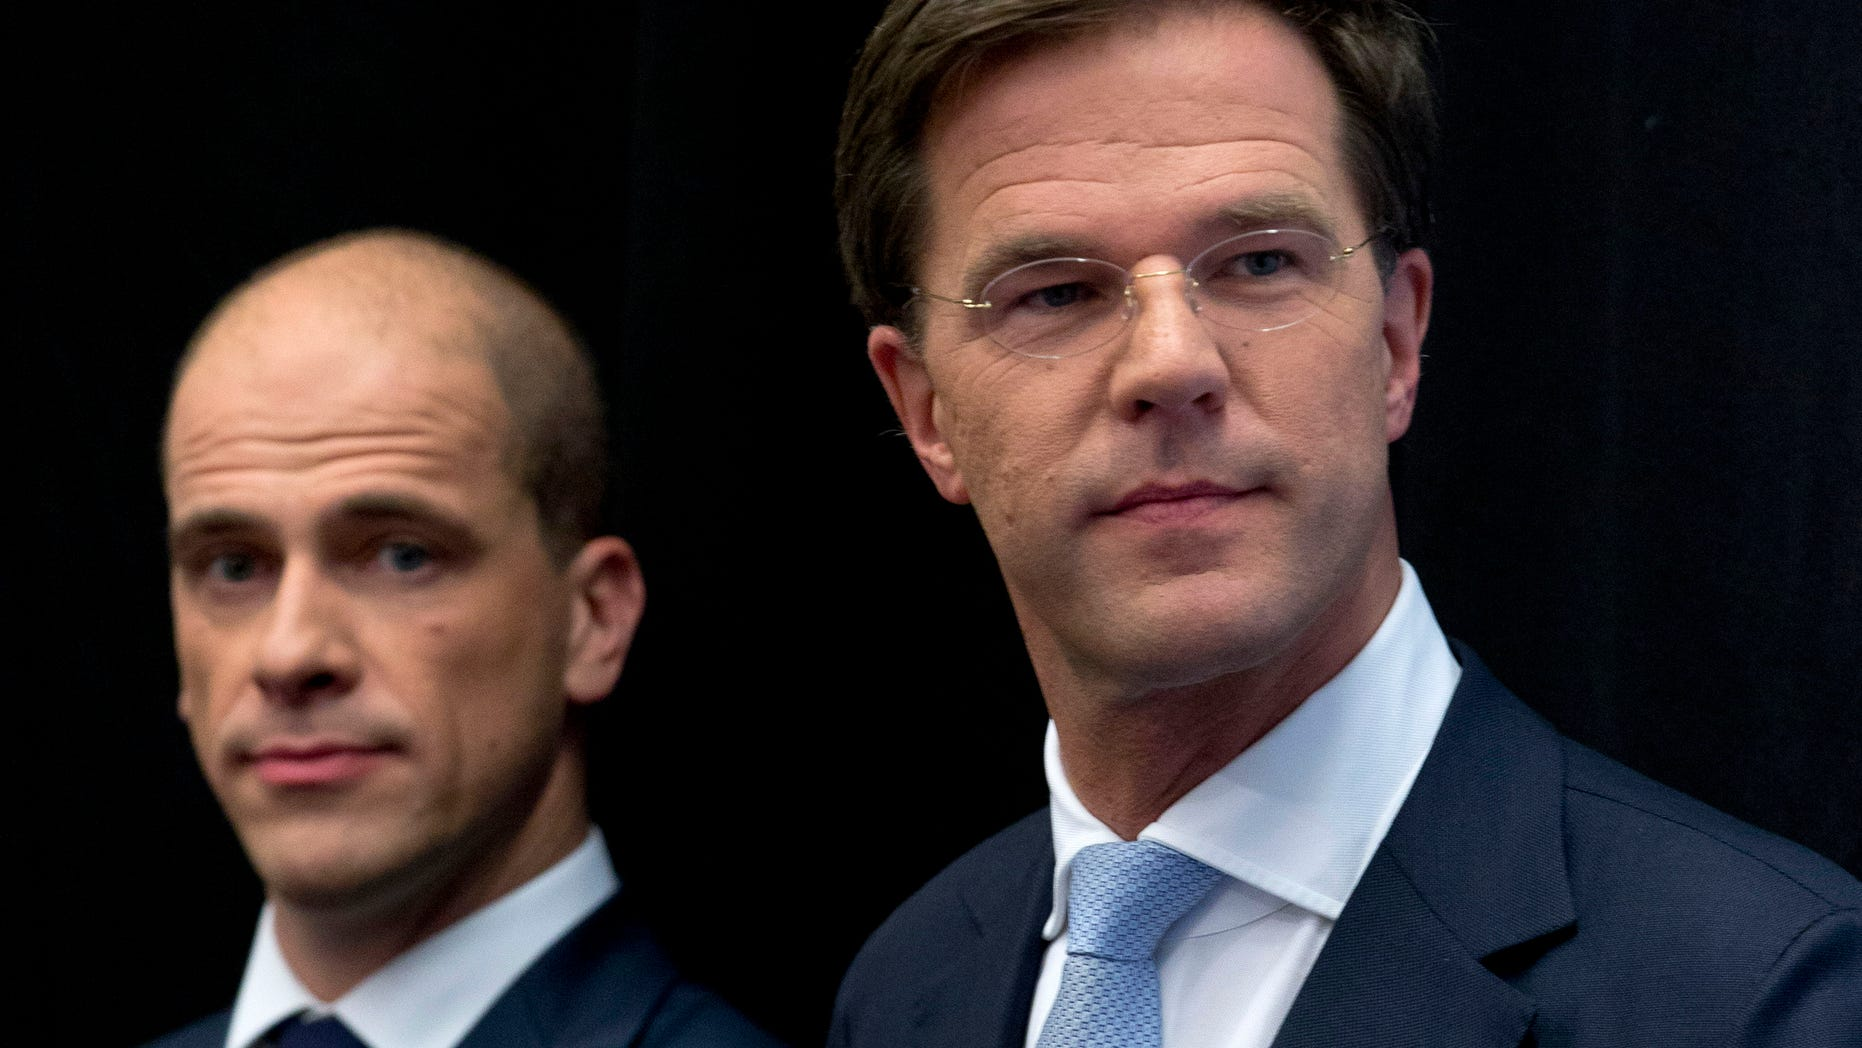 Oct. 29, 2012: Netherlands' caretaker Prime Minister Mark Rutte, right, and Labor Party Leader Diederik Samsom, left, attend a joint news conference in The Hague, Netherlands.